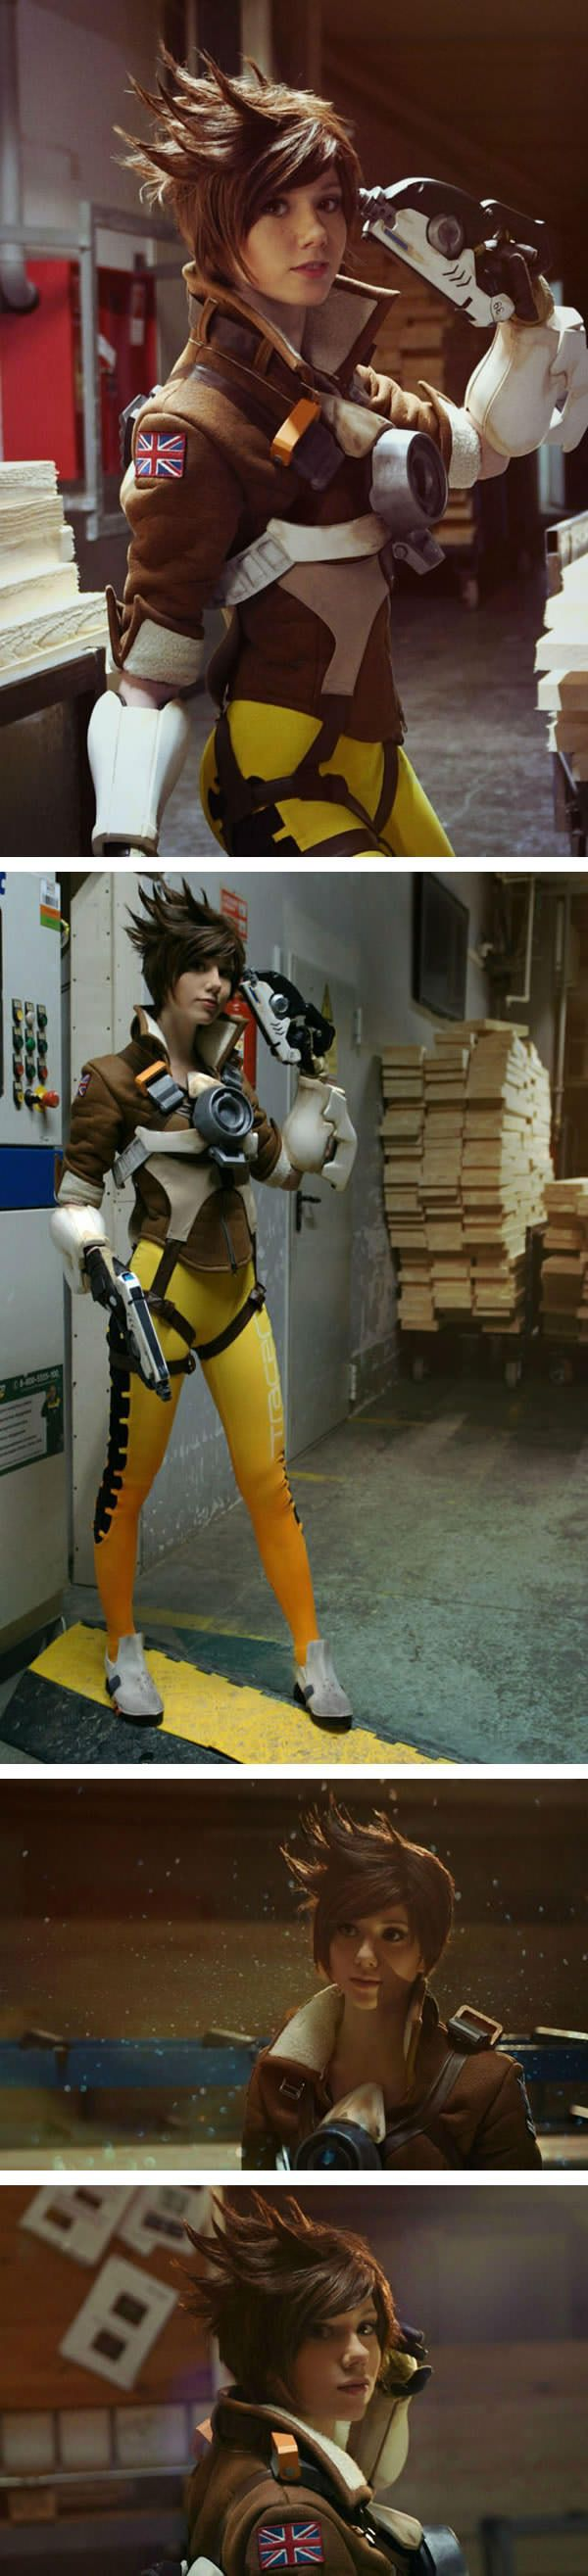 This Tracer cosplay by Hoteshi is almost perfect.